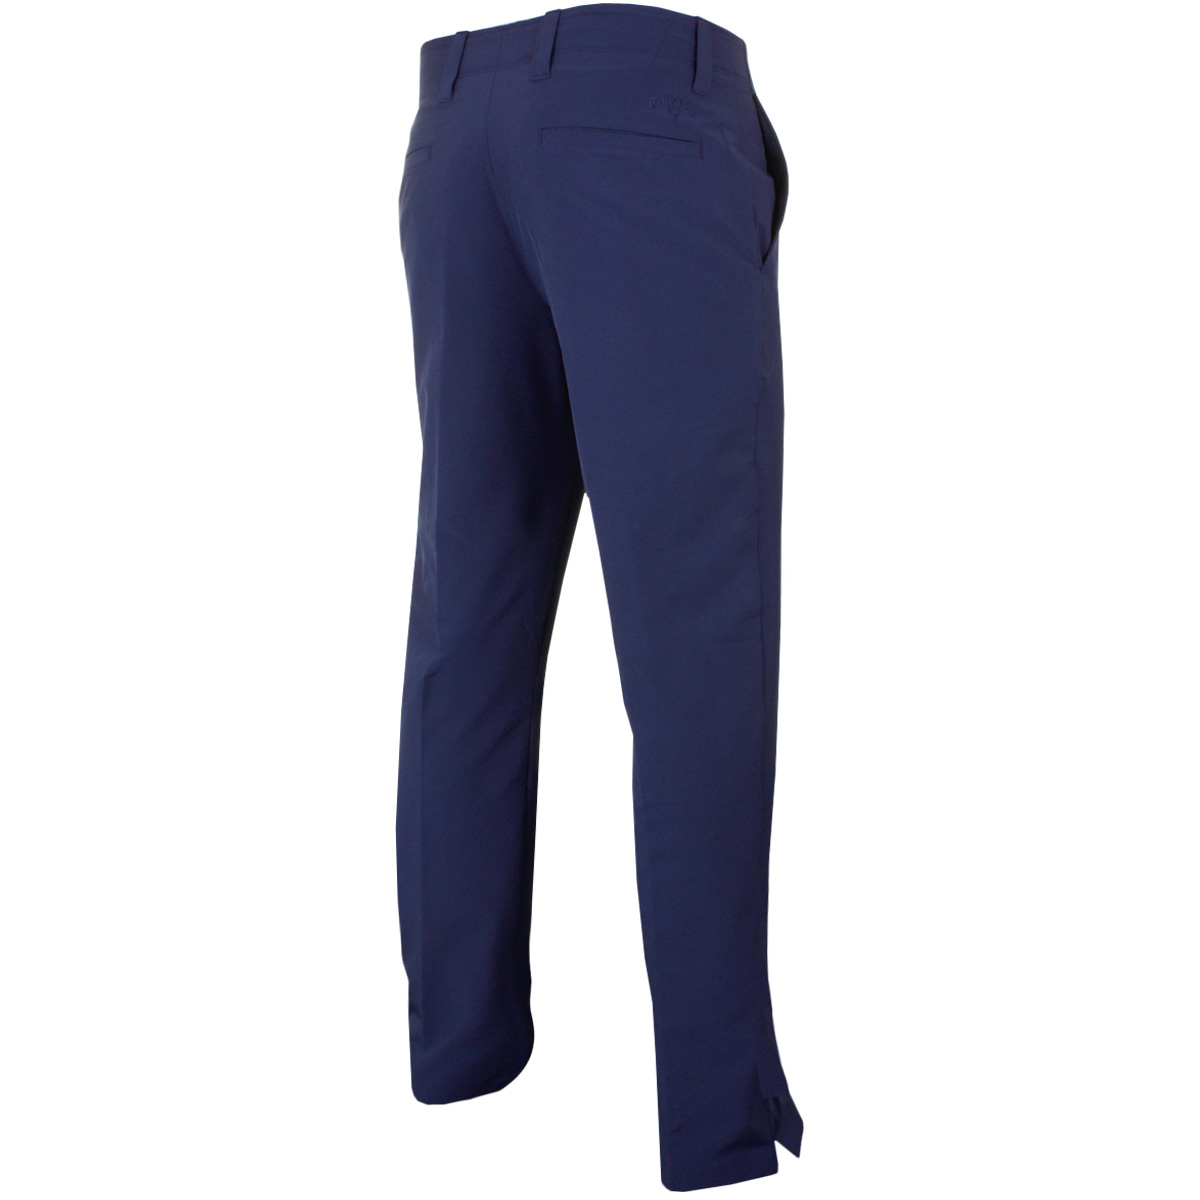 Callaway-Mens-2019-Chev-Tech-II-Lightweight-Stretch-Golf-Trousers-28-OFF-RRP thumbnail 15